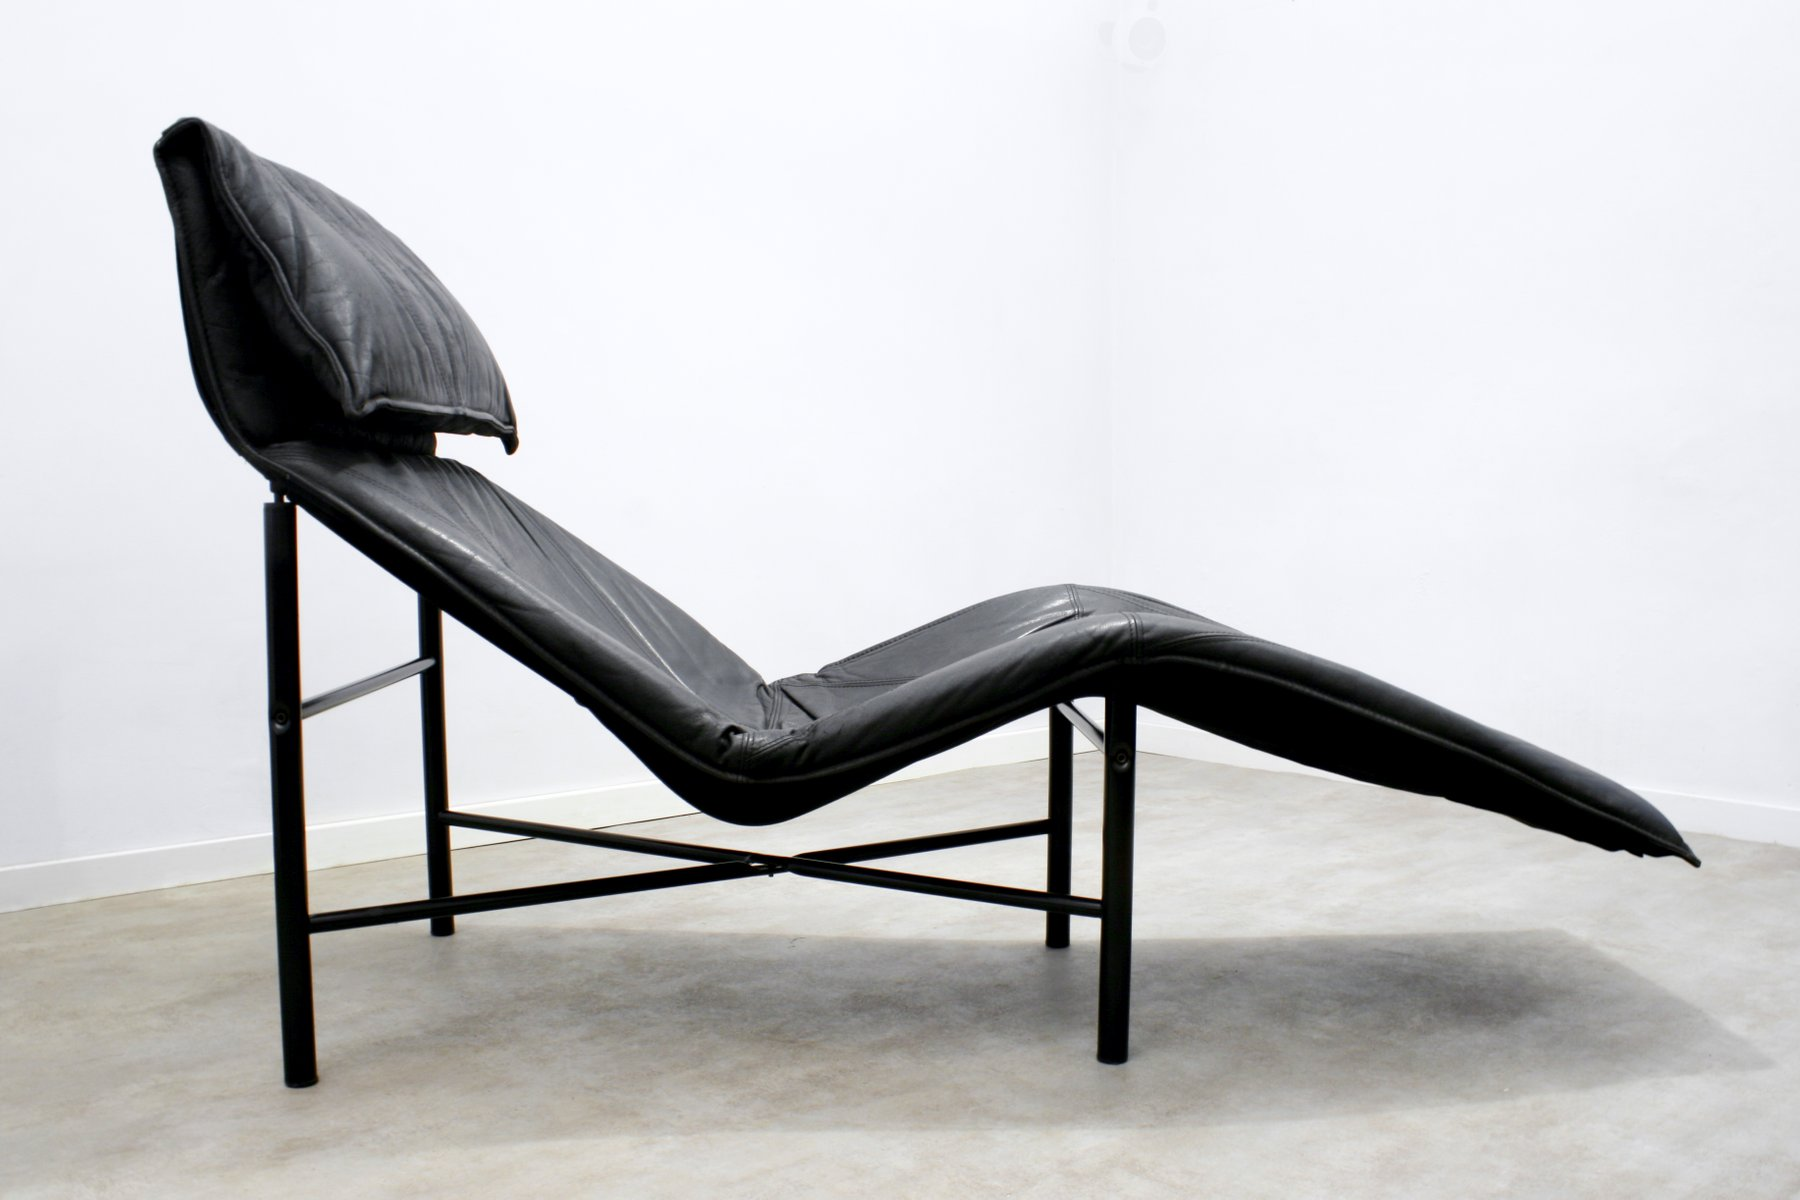 cool black leather skye chaise longue by tord bjrklund for ikea s with chaise 65 cm ikea. Black Bedroom Furniture Sets. Home Design Ideas